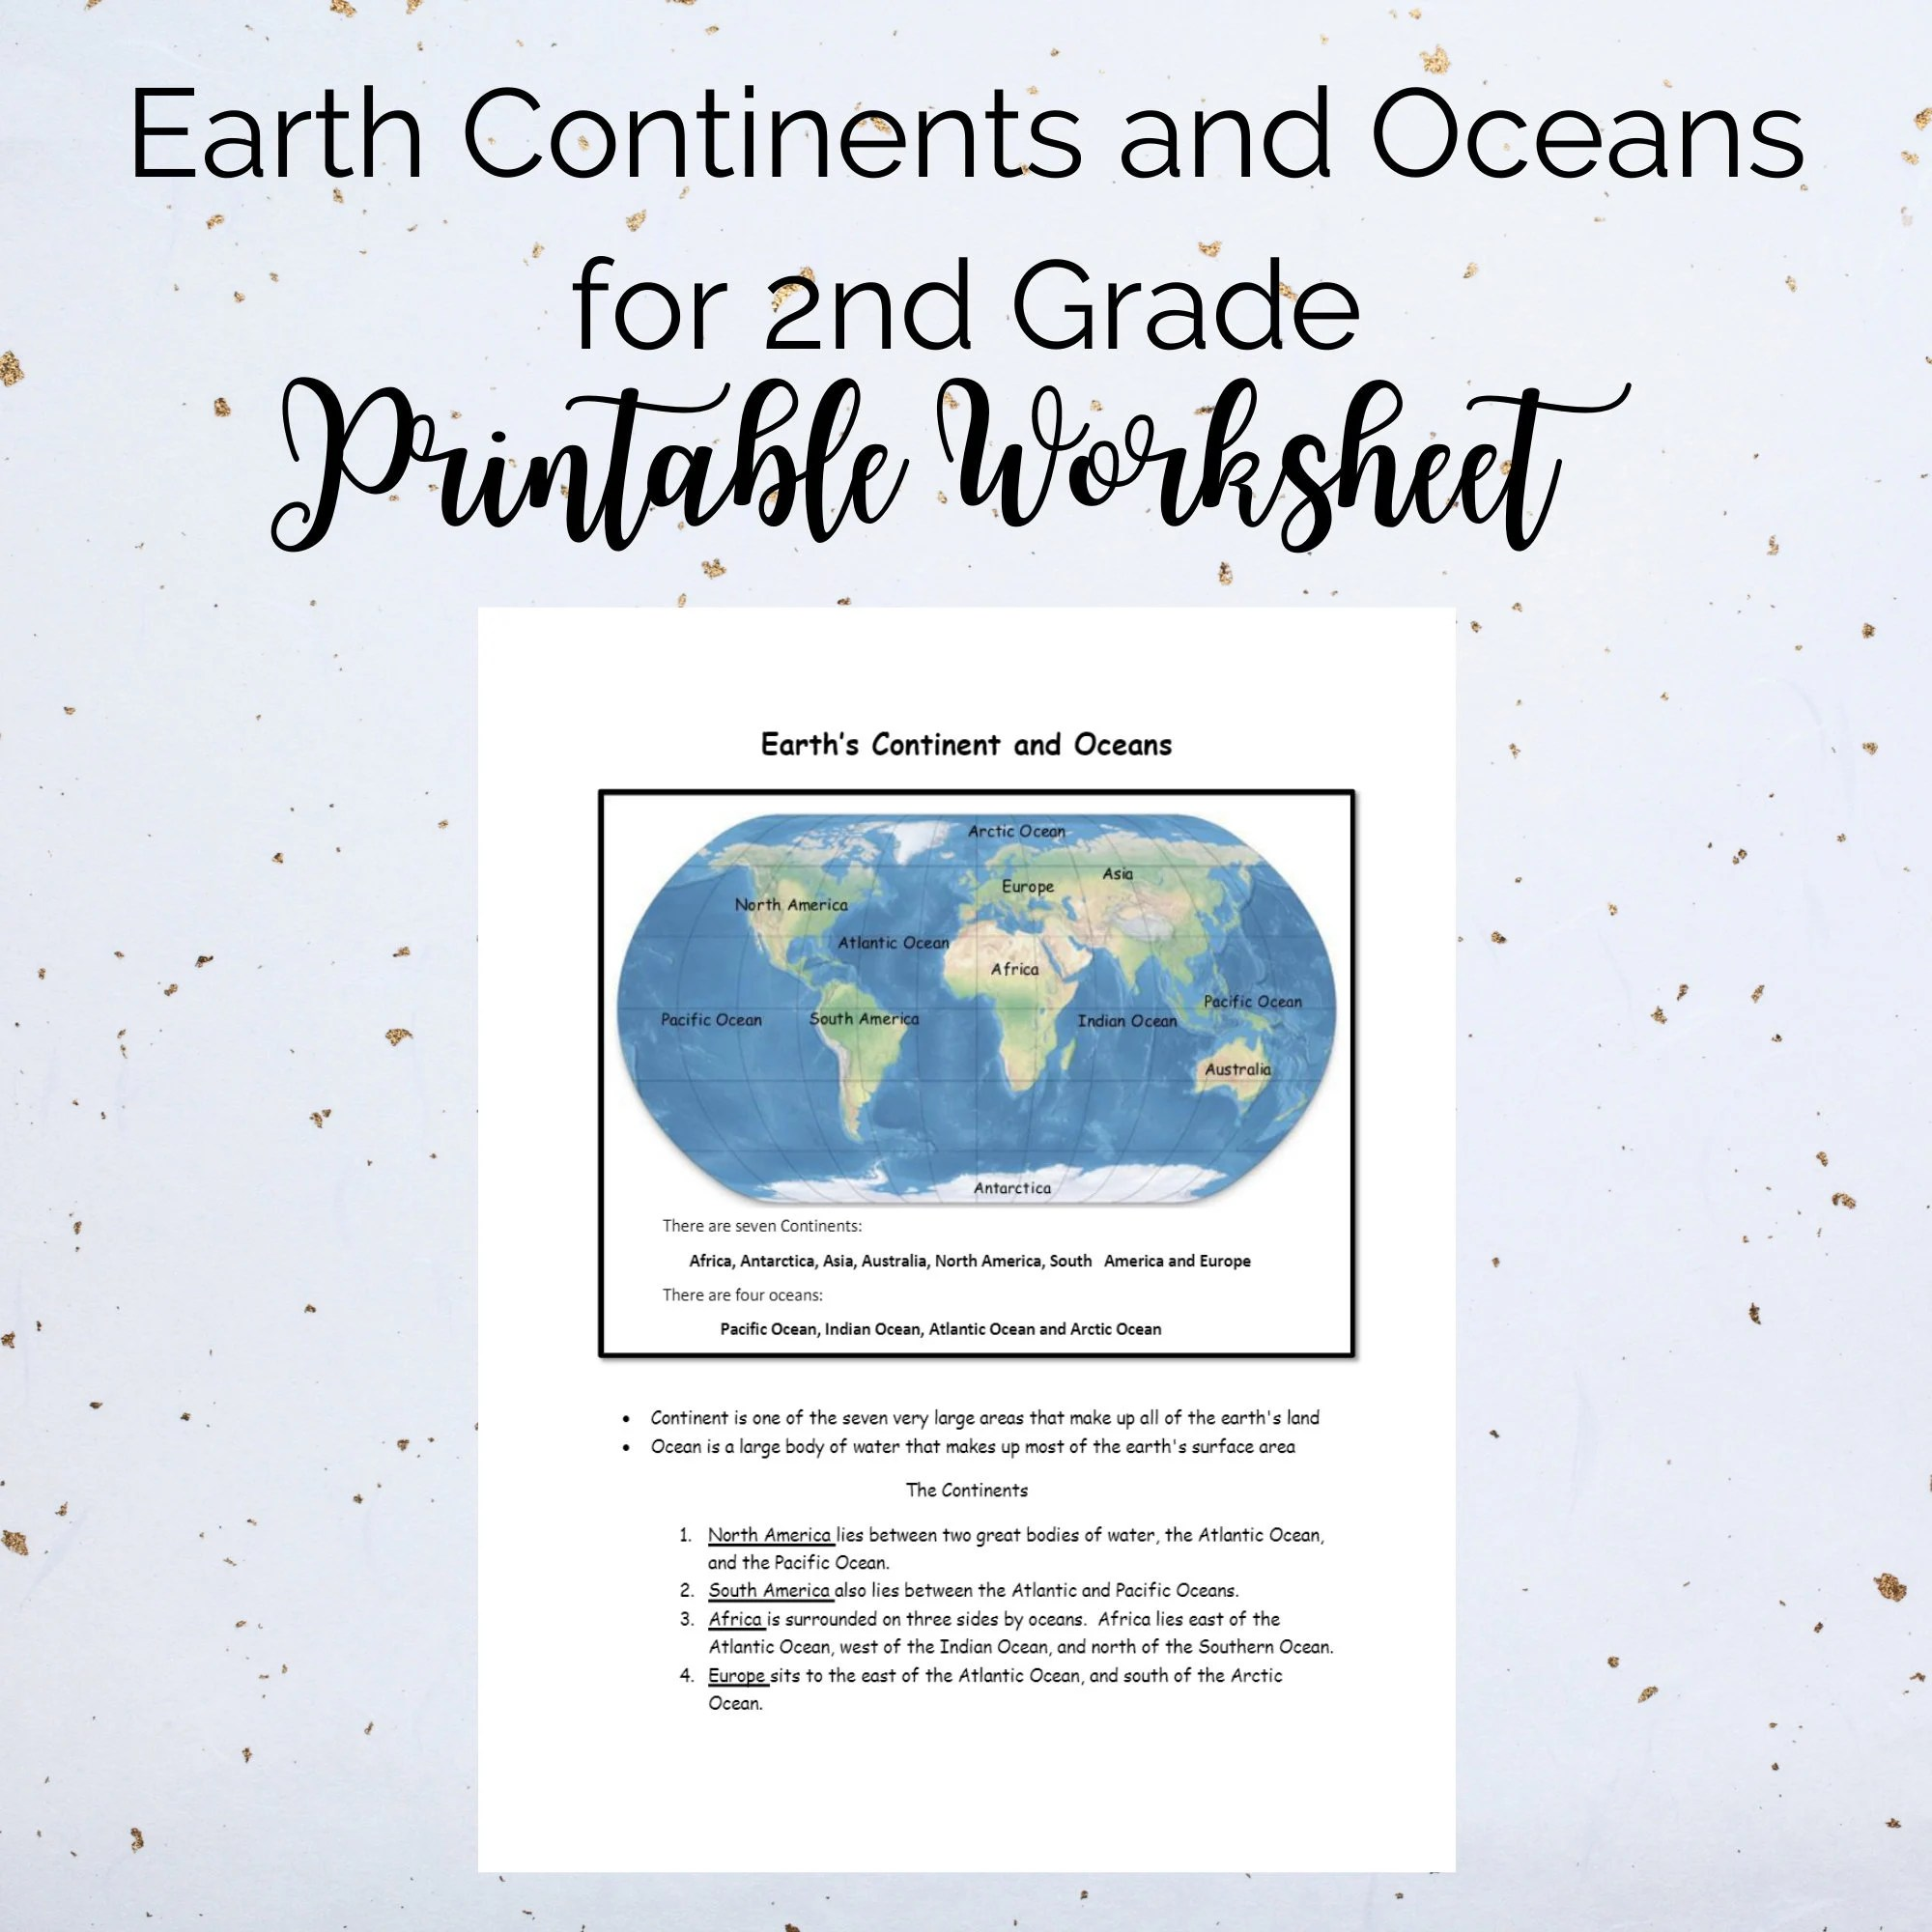 Earth Continents And Oceans For 2nd Grade Printable